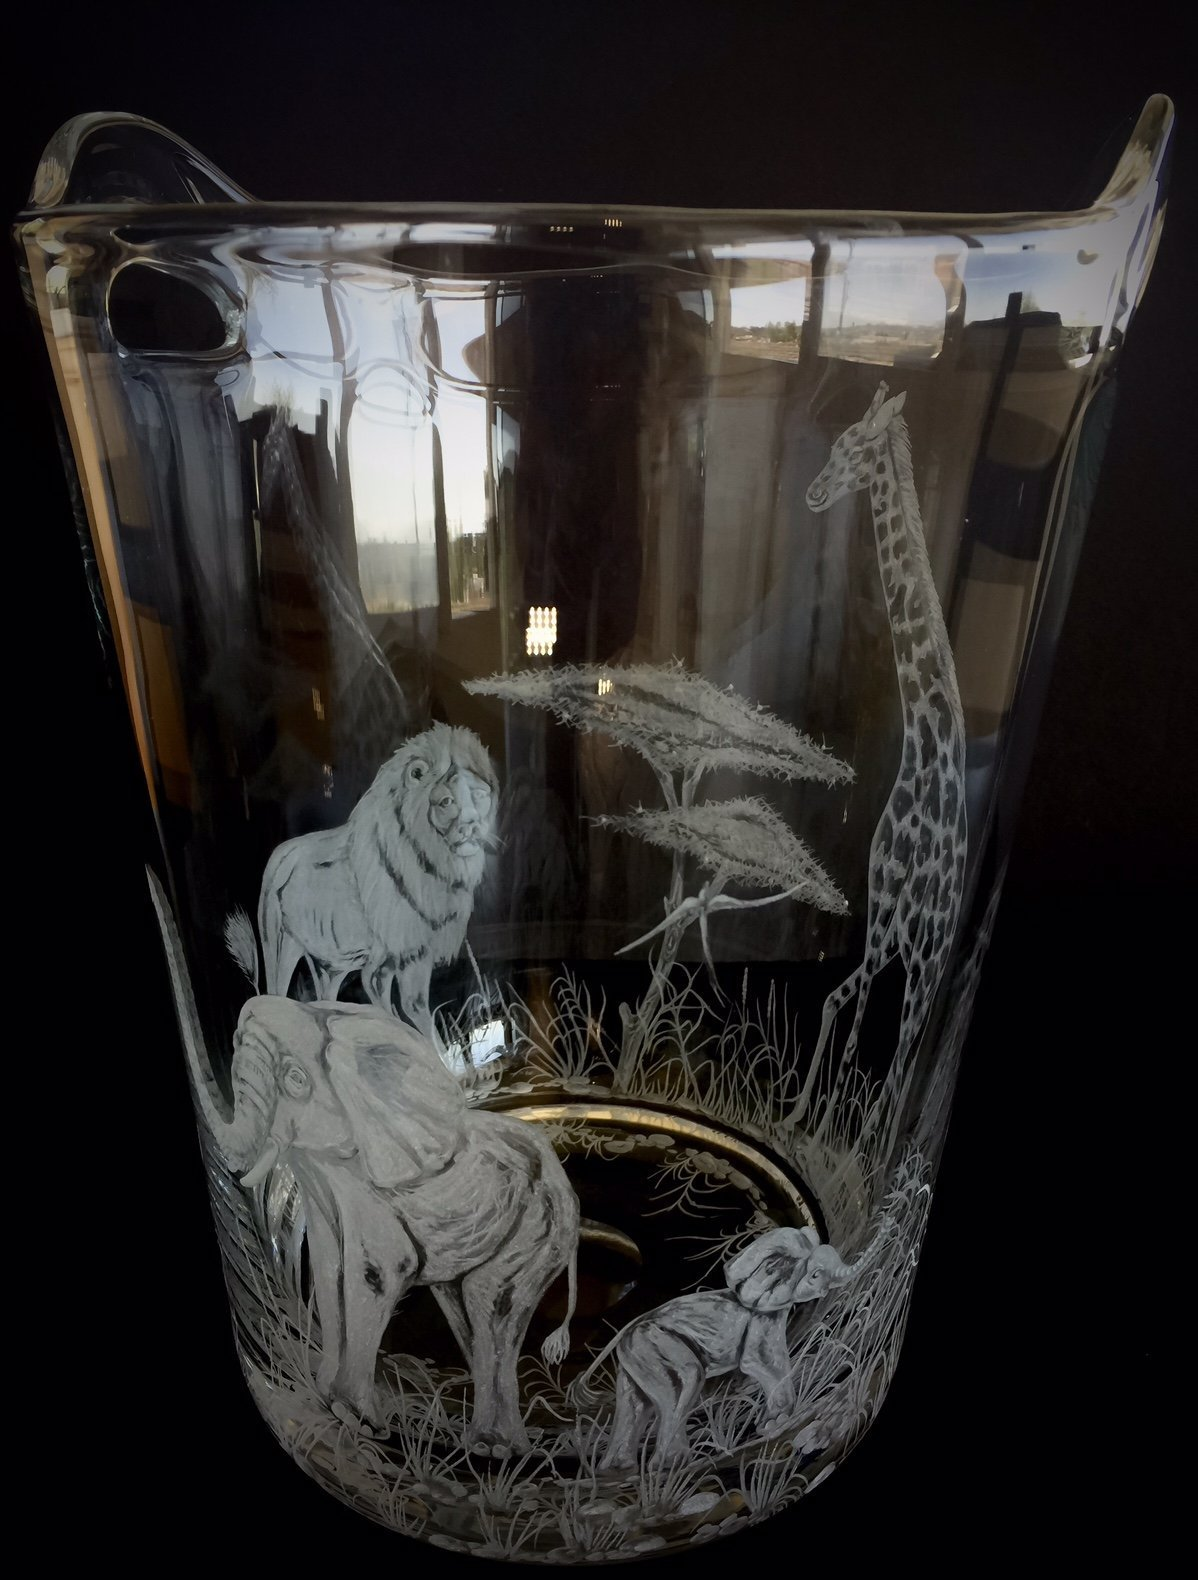 Hand Engraved Ice Bucket African Animals, Lion, Giraffe and Elephant, African Safari Scene, Engraved Bar Ware, Wedding Gifts Etched by Akoko Art Handengraved Crystal Glass (Image #3)